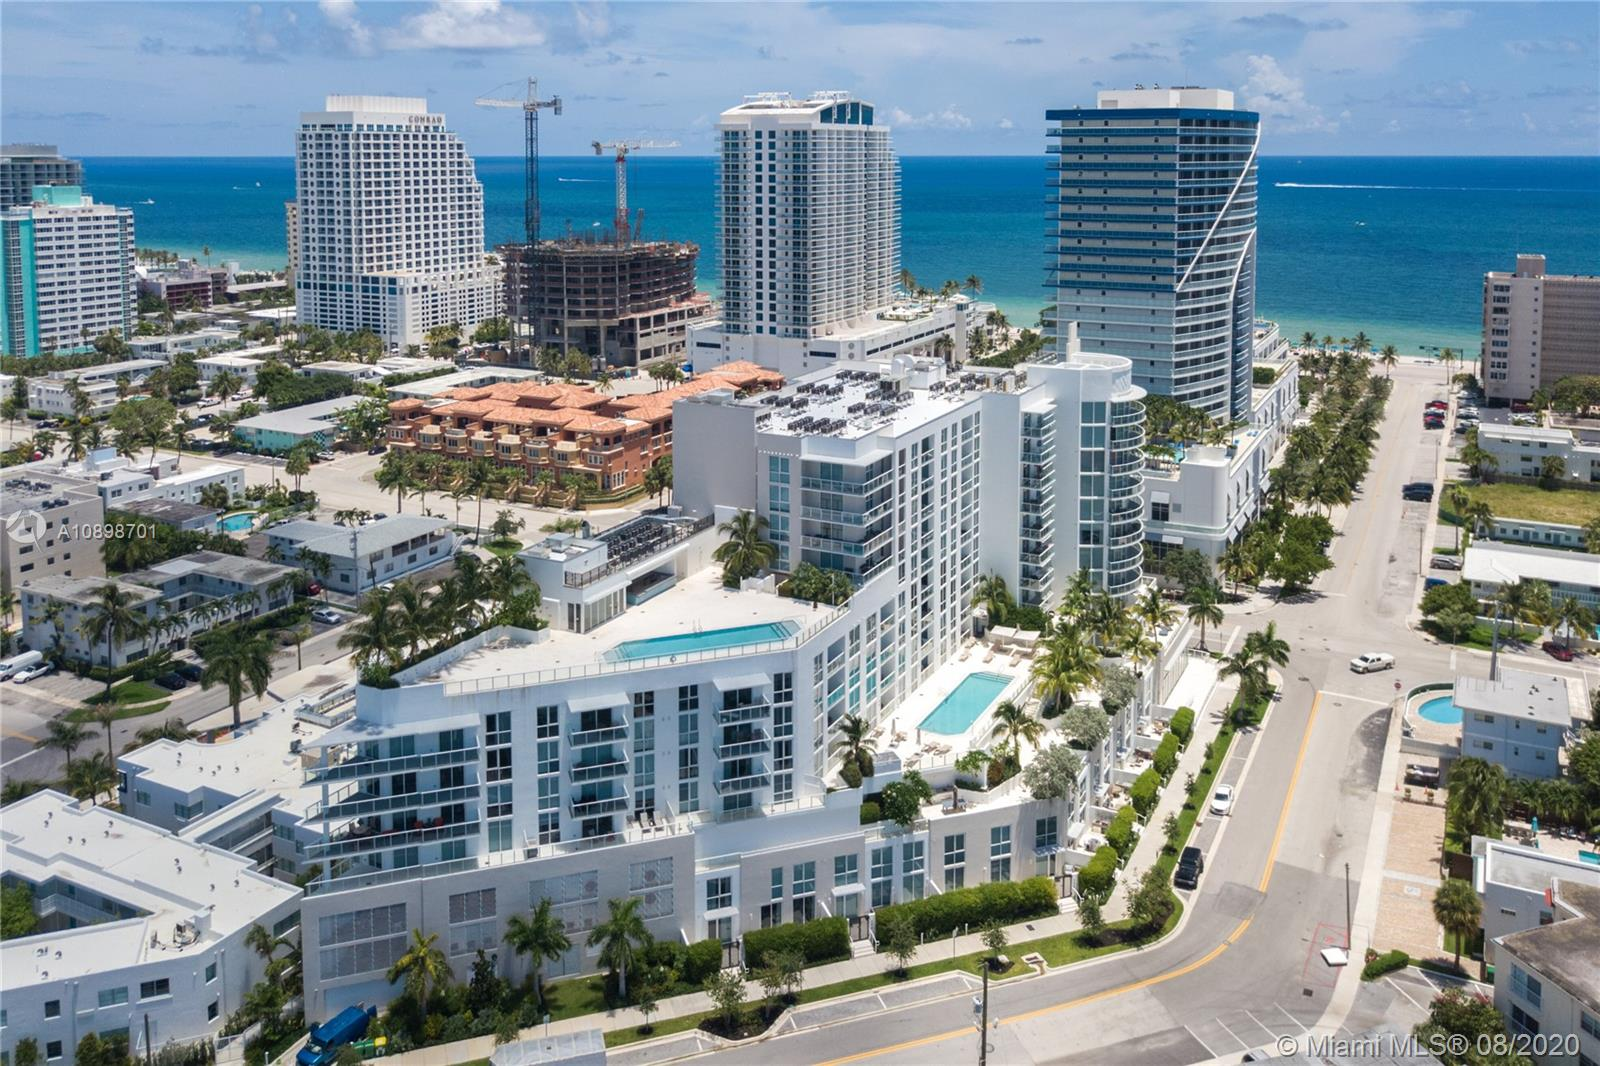 Gorgeous and Spacious 2bed/1bath at the desirable and new Tiffany House Residences in Fort Lauderdale Beach. Marble Bathrooms, quart countertops, high end appliances, porcelain tile floors. Full Service Building with 5 stars amenities offering club room, movie theater, gym, sun deck overlooking the intercoastal. Basic cable and high speed internet throughout common areas. Minutes Away from Las Olas Boulevard, one block away to the beach, just minutes away from FLL Airport and Port Everglades. Showings during Covid-19 times are allowed using protection gear mask.